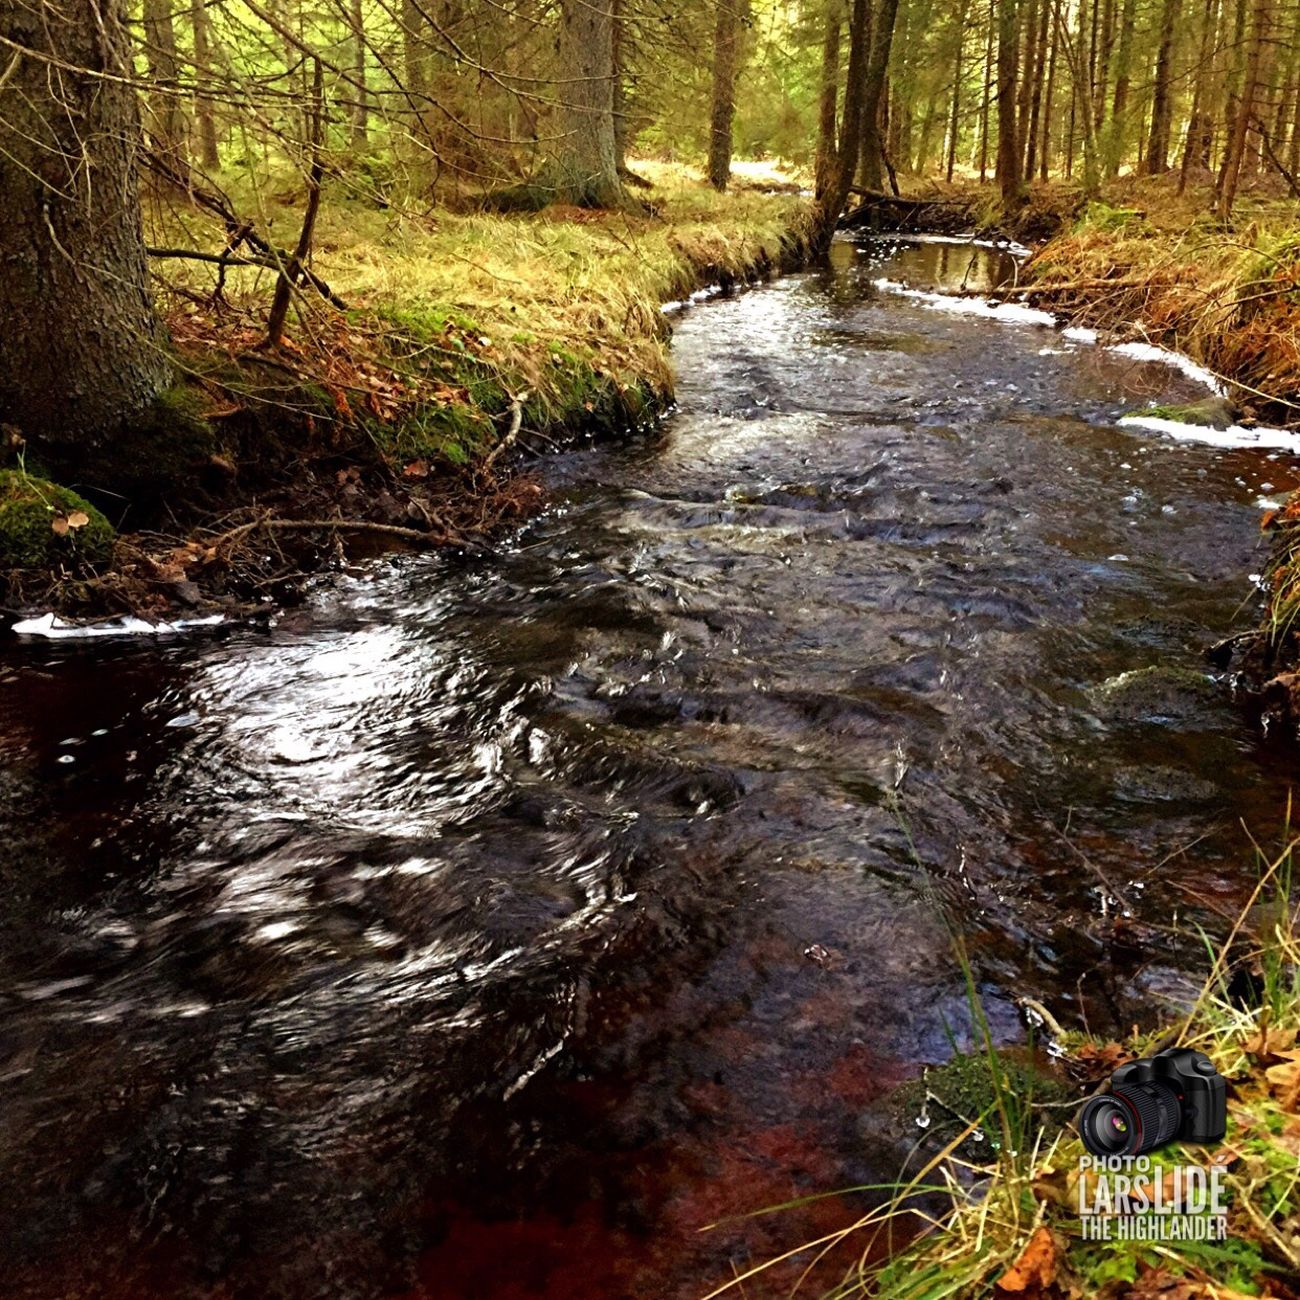 Nature Water Tree Flowing Water Stream Forest Outdoors Stream - Flowing Water No People Beauty In Nature Wetland Cold Temperature Taking Photos Winter